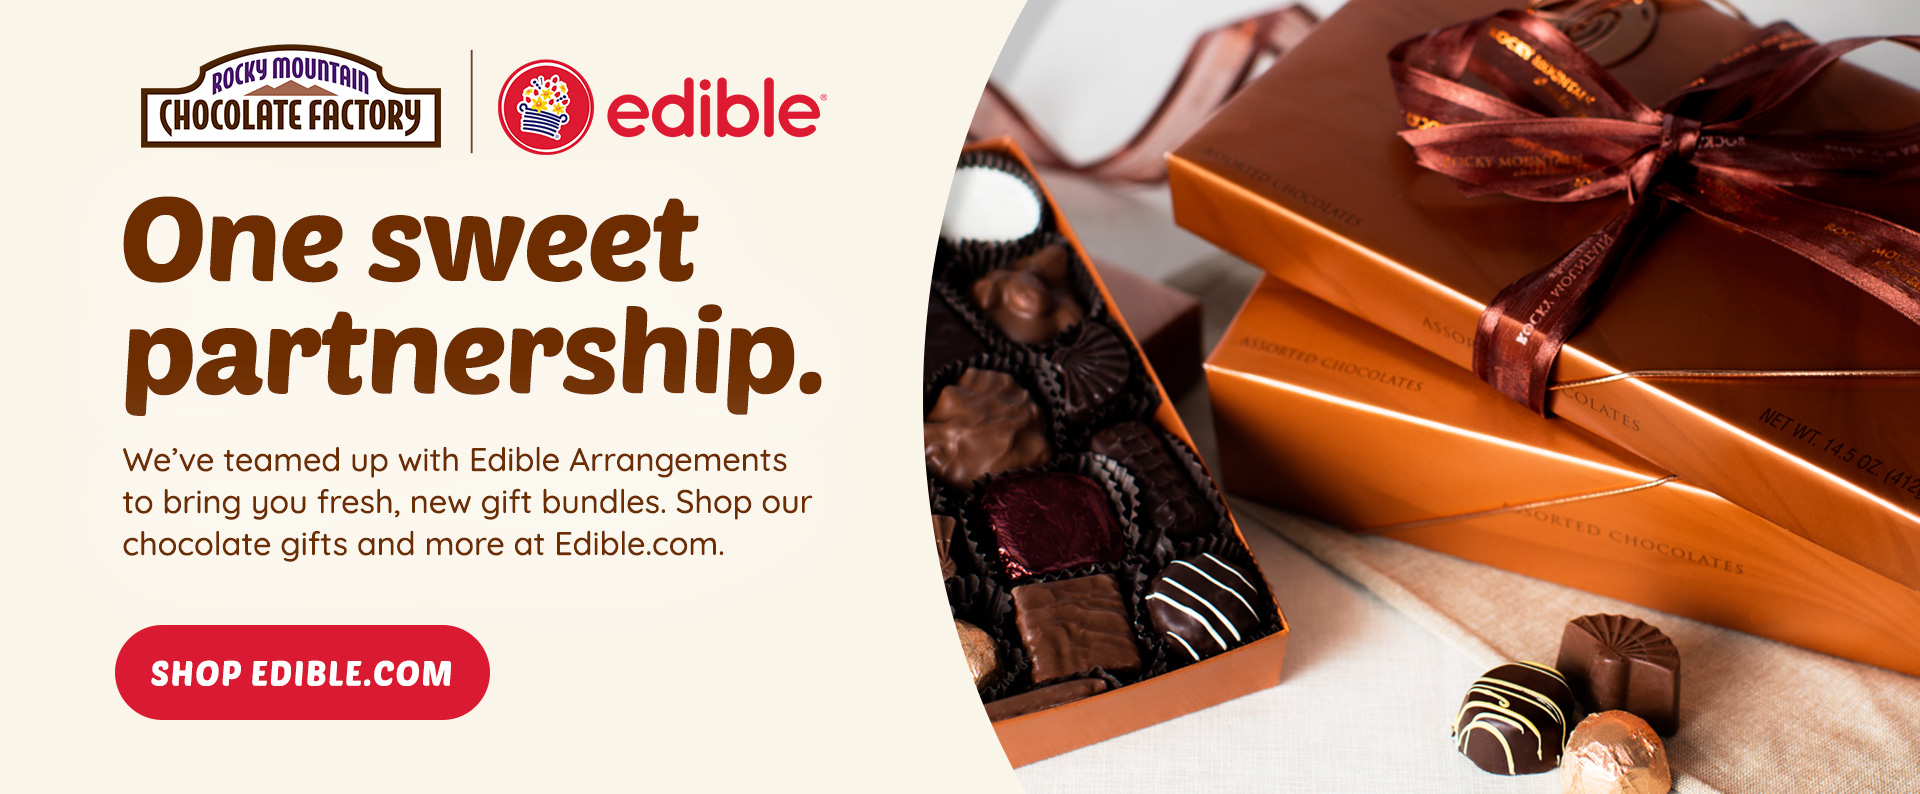 Click here to find a local store for your favorite Chocolates, Assorted Chocolates, Gift Baskets, and much more